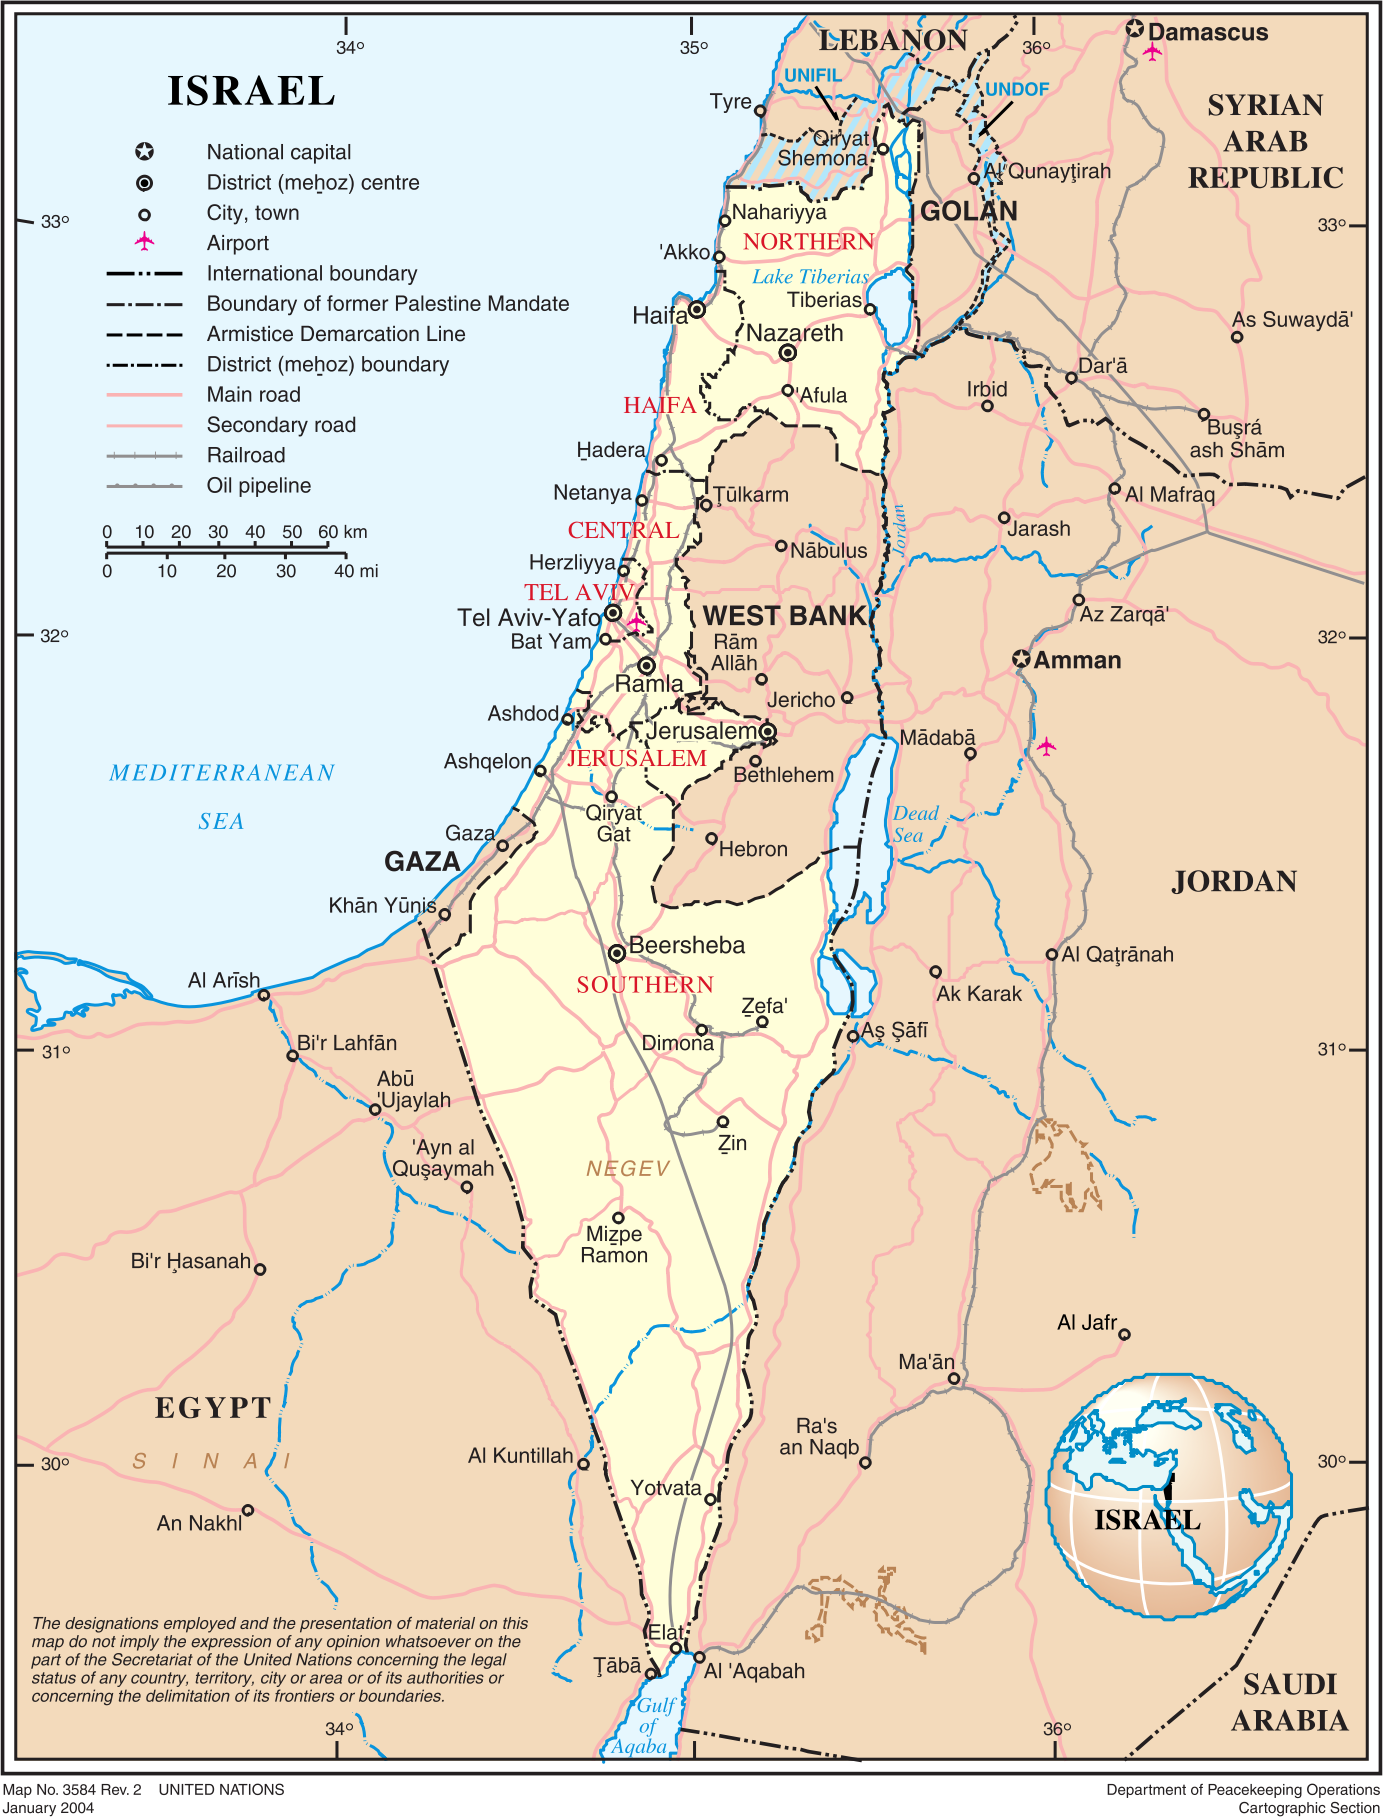 Israel and Disputed Territories by wanglizhong